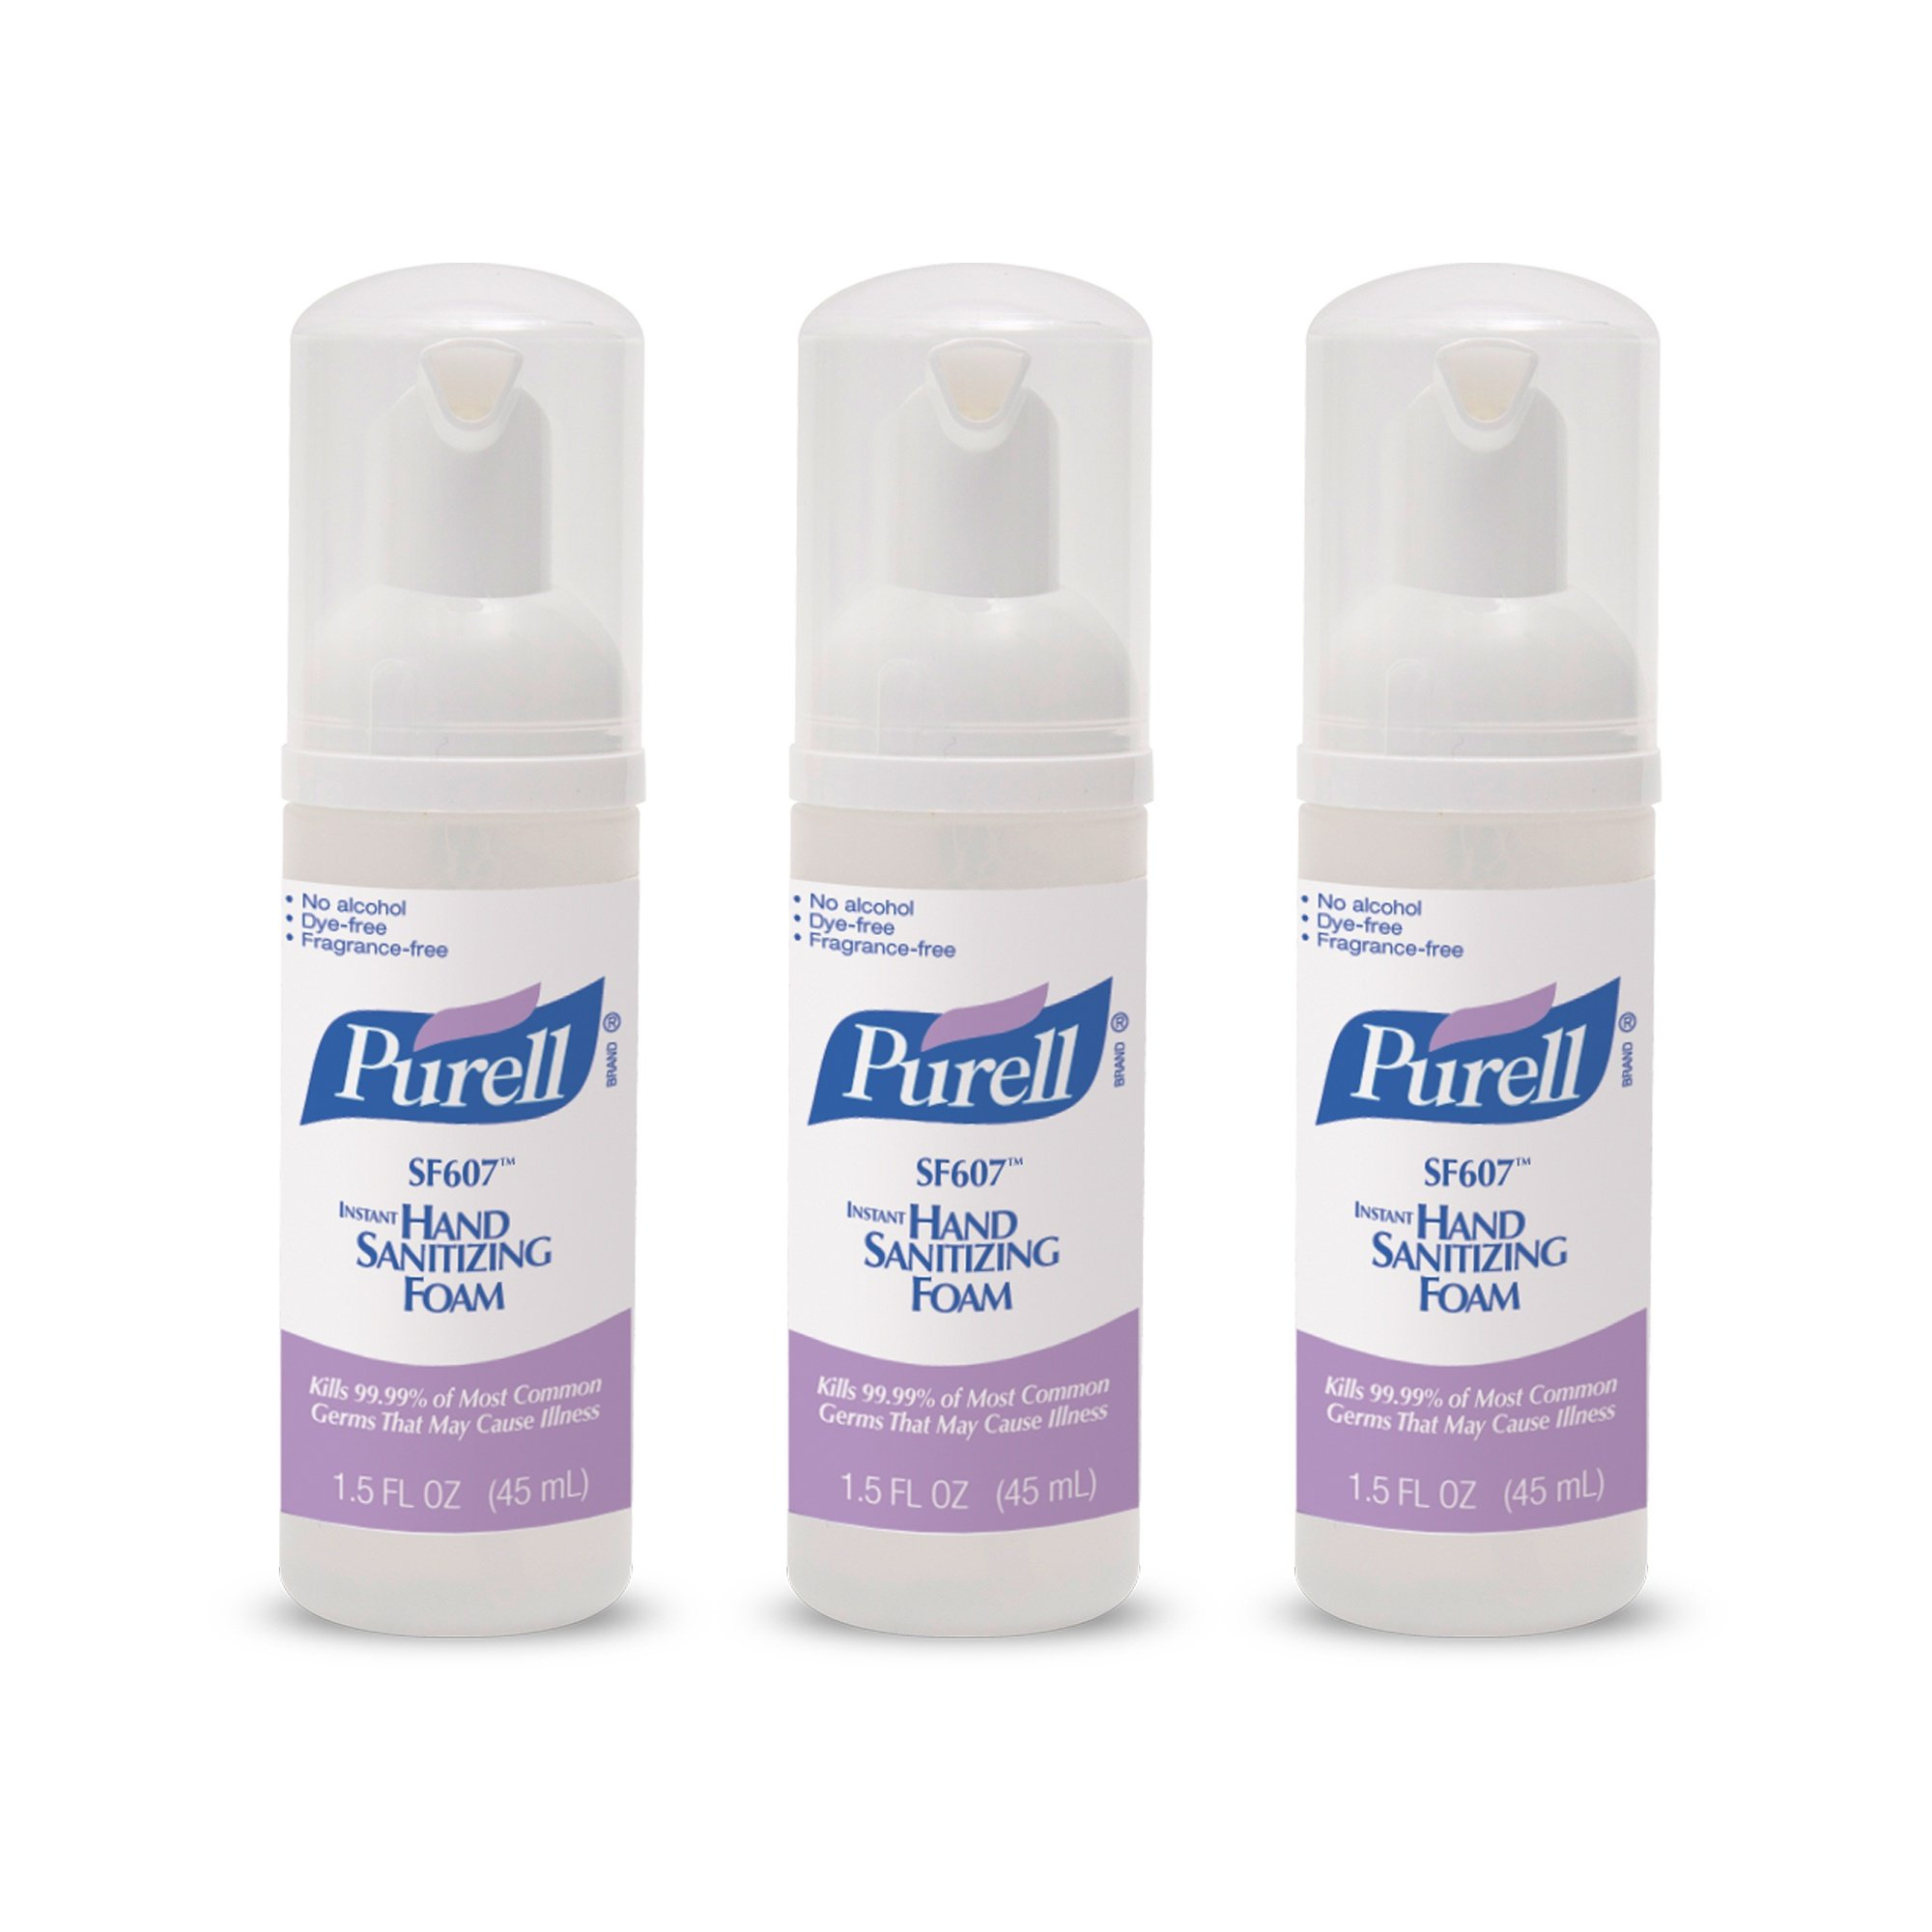 PURELL SF607 Hand Sanitizer Foam Pump Bottle - Portable Foaming Hand Sanitizer, 45mL Pump Bottle (Case of 24) - 5684-24